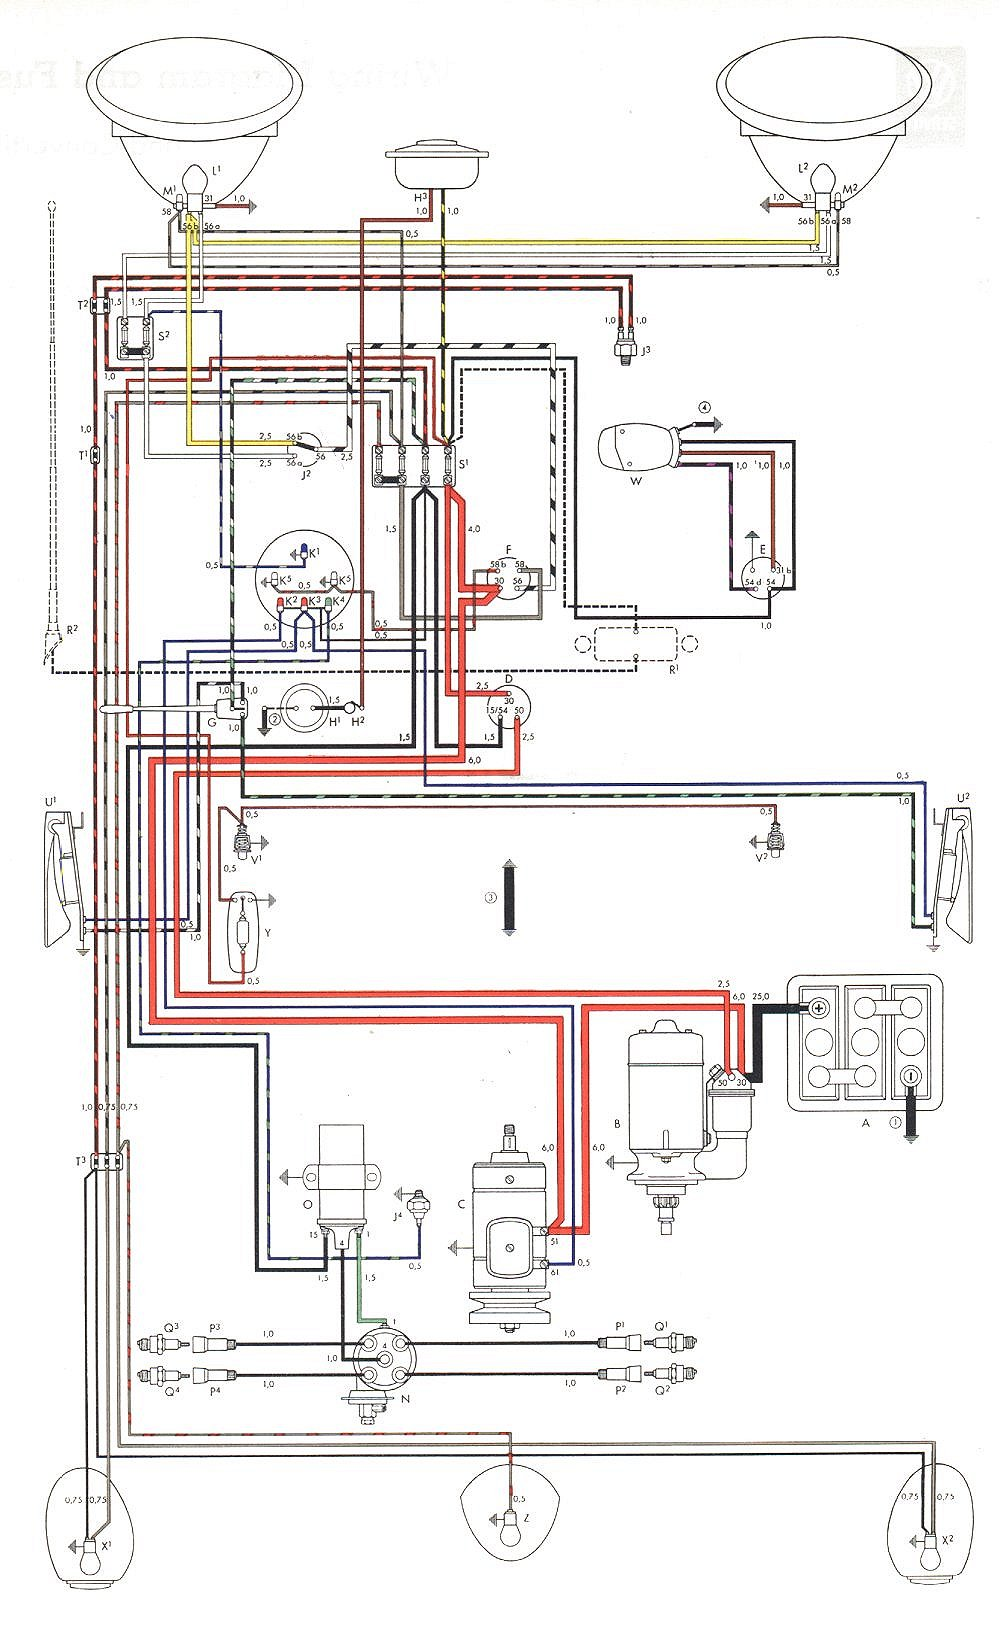 hight resolution of vw wiring harness diagram wiring diagram load 2001 vw beetle alternator wiring diagram 2001 vw beetle wiring